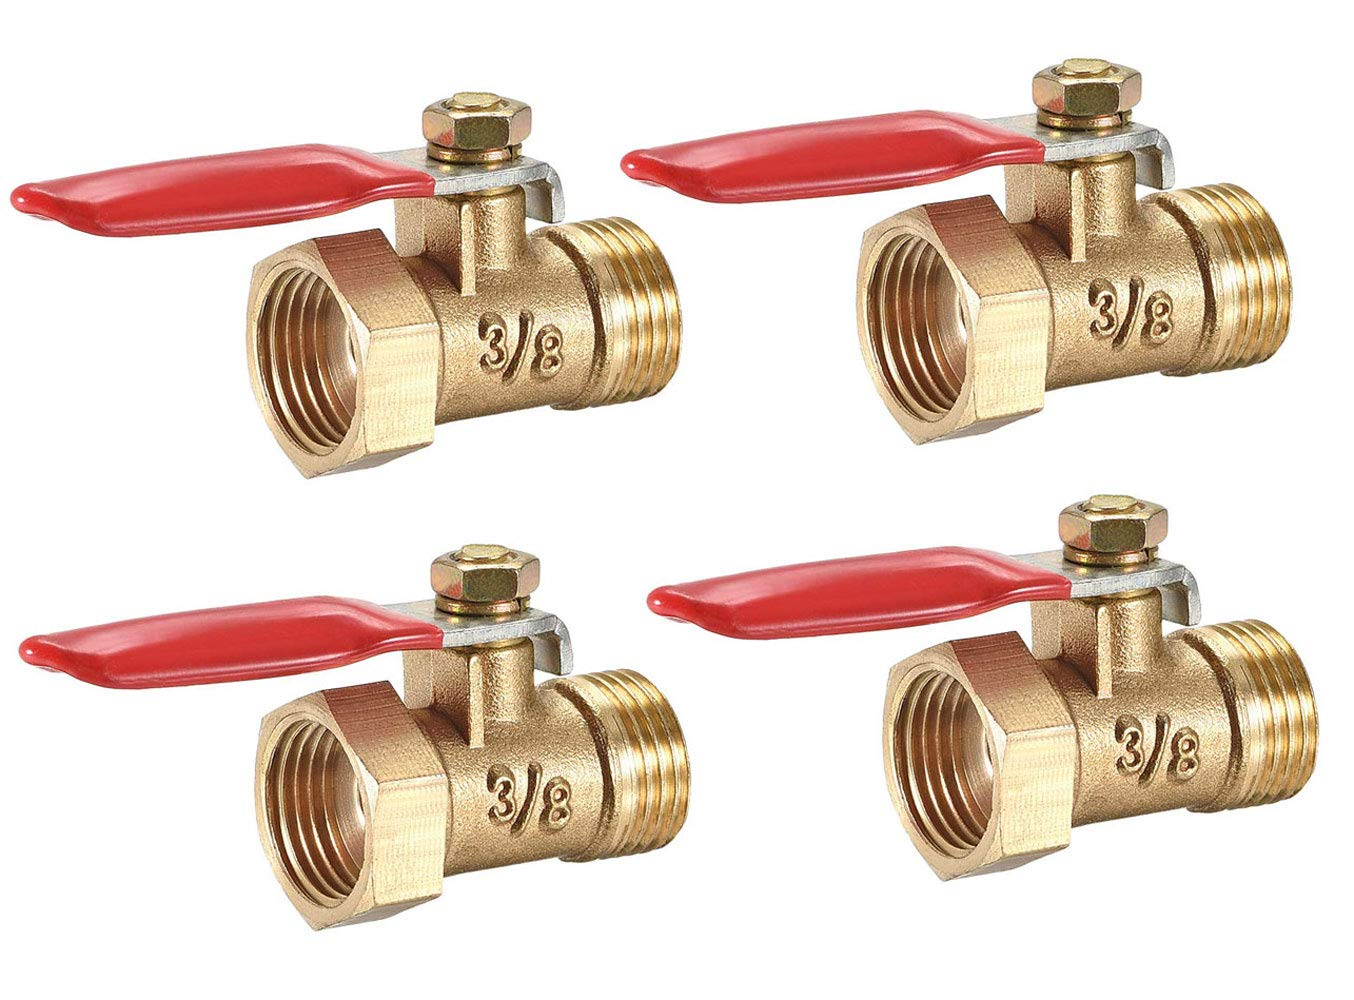 Lheng 3 Max 44% OFF 8 Inch Brass Large special price !! Ball Valve Shut NPT Switch Off Male 4